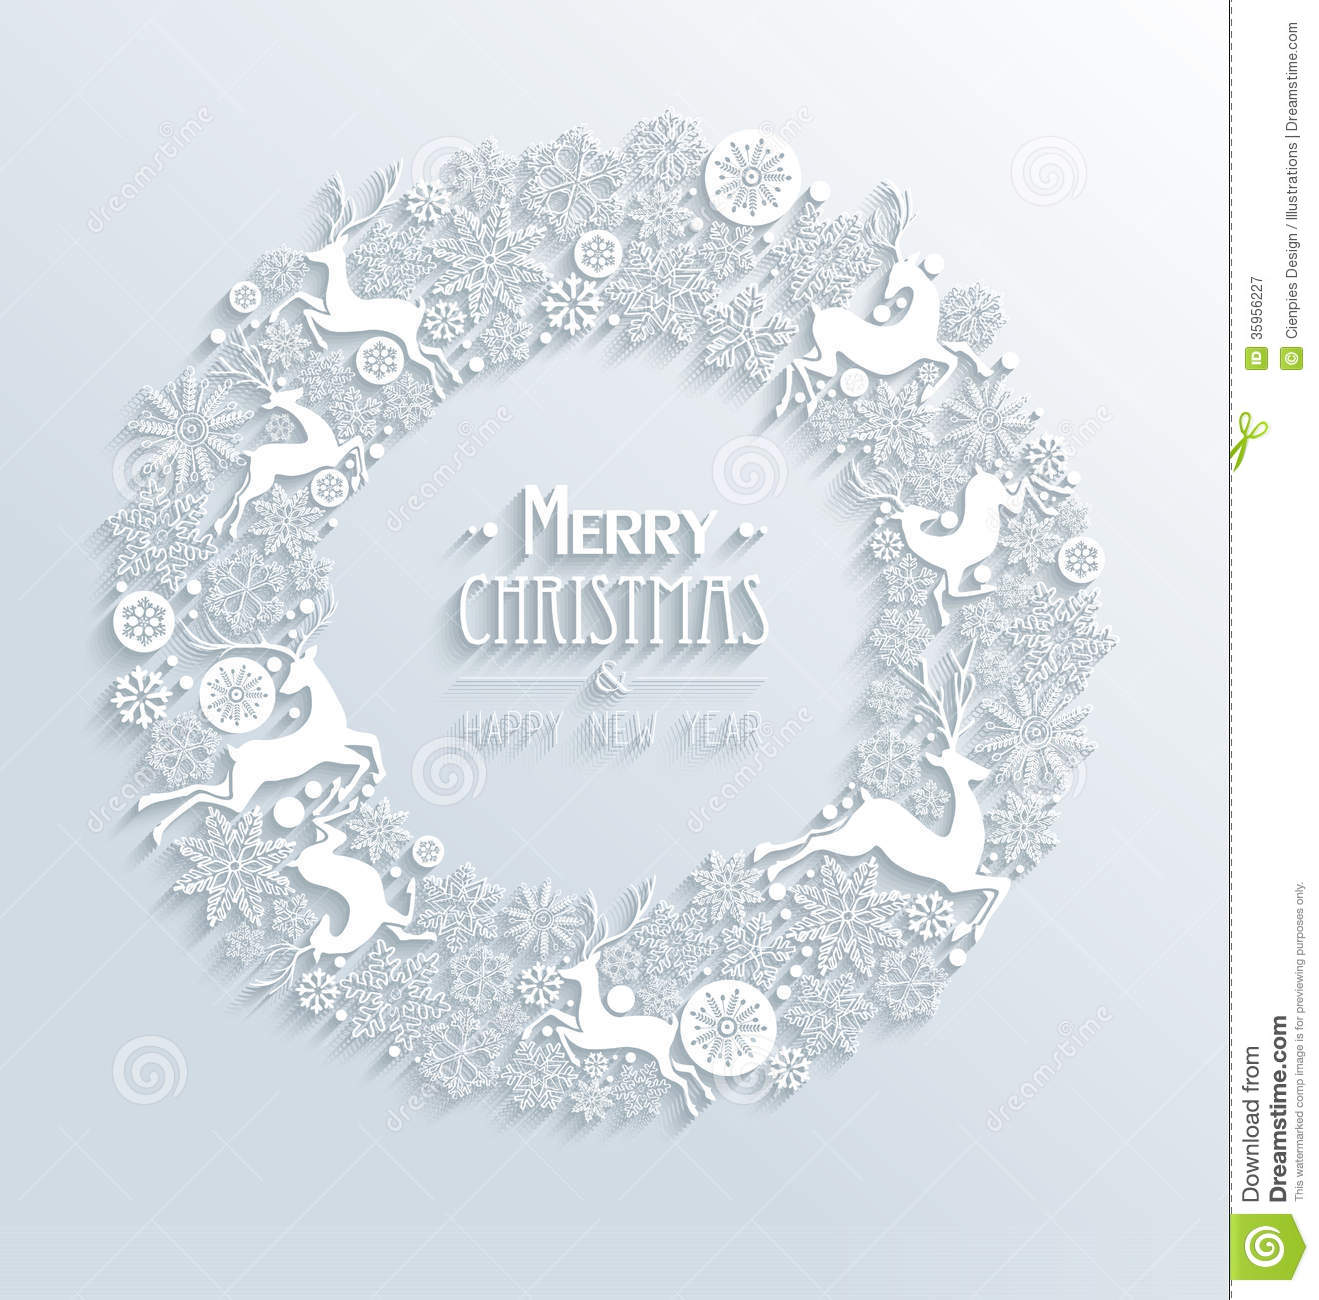 Decorating Tips For A Modern Merry Christmas: White Merry Christmas And Happy New Year 3d White Royalty